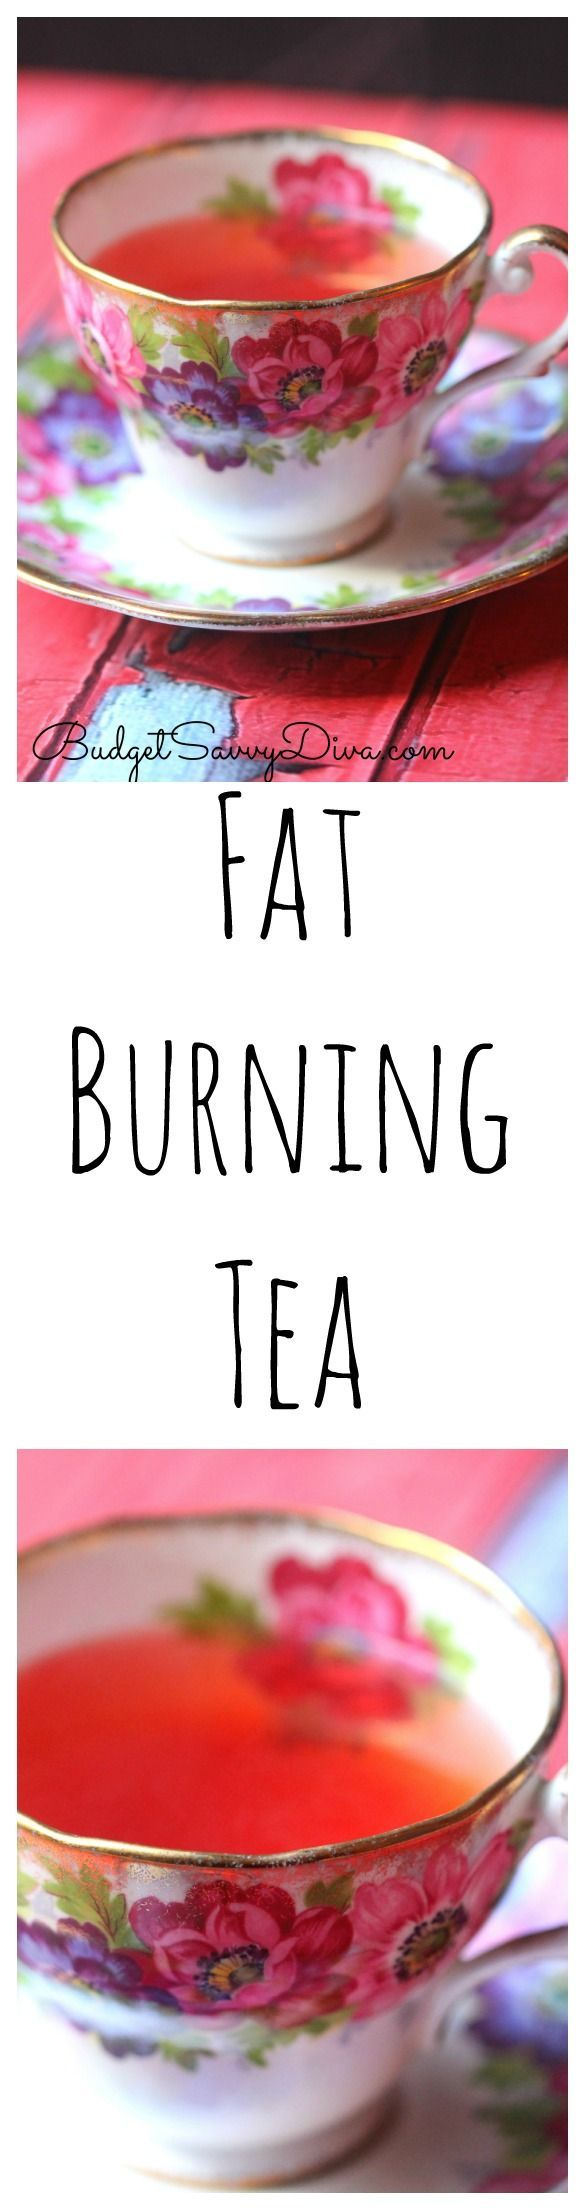 FAST Working Fat Burning Tea Recipe. Almost instant results - DIY Skinny Tea Recipe. Detox Tea. Sip once daily and look slimmer!